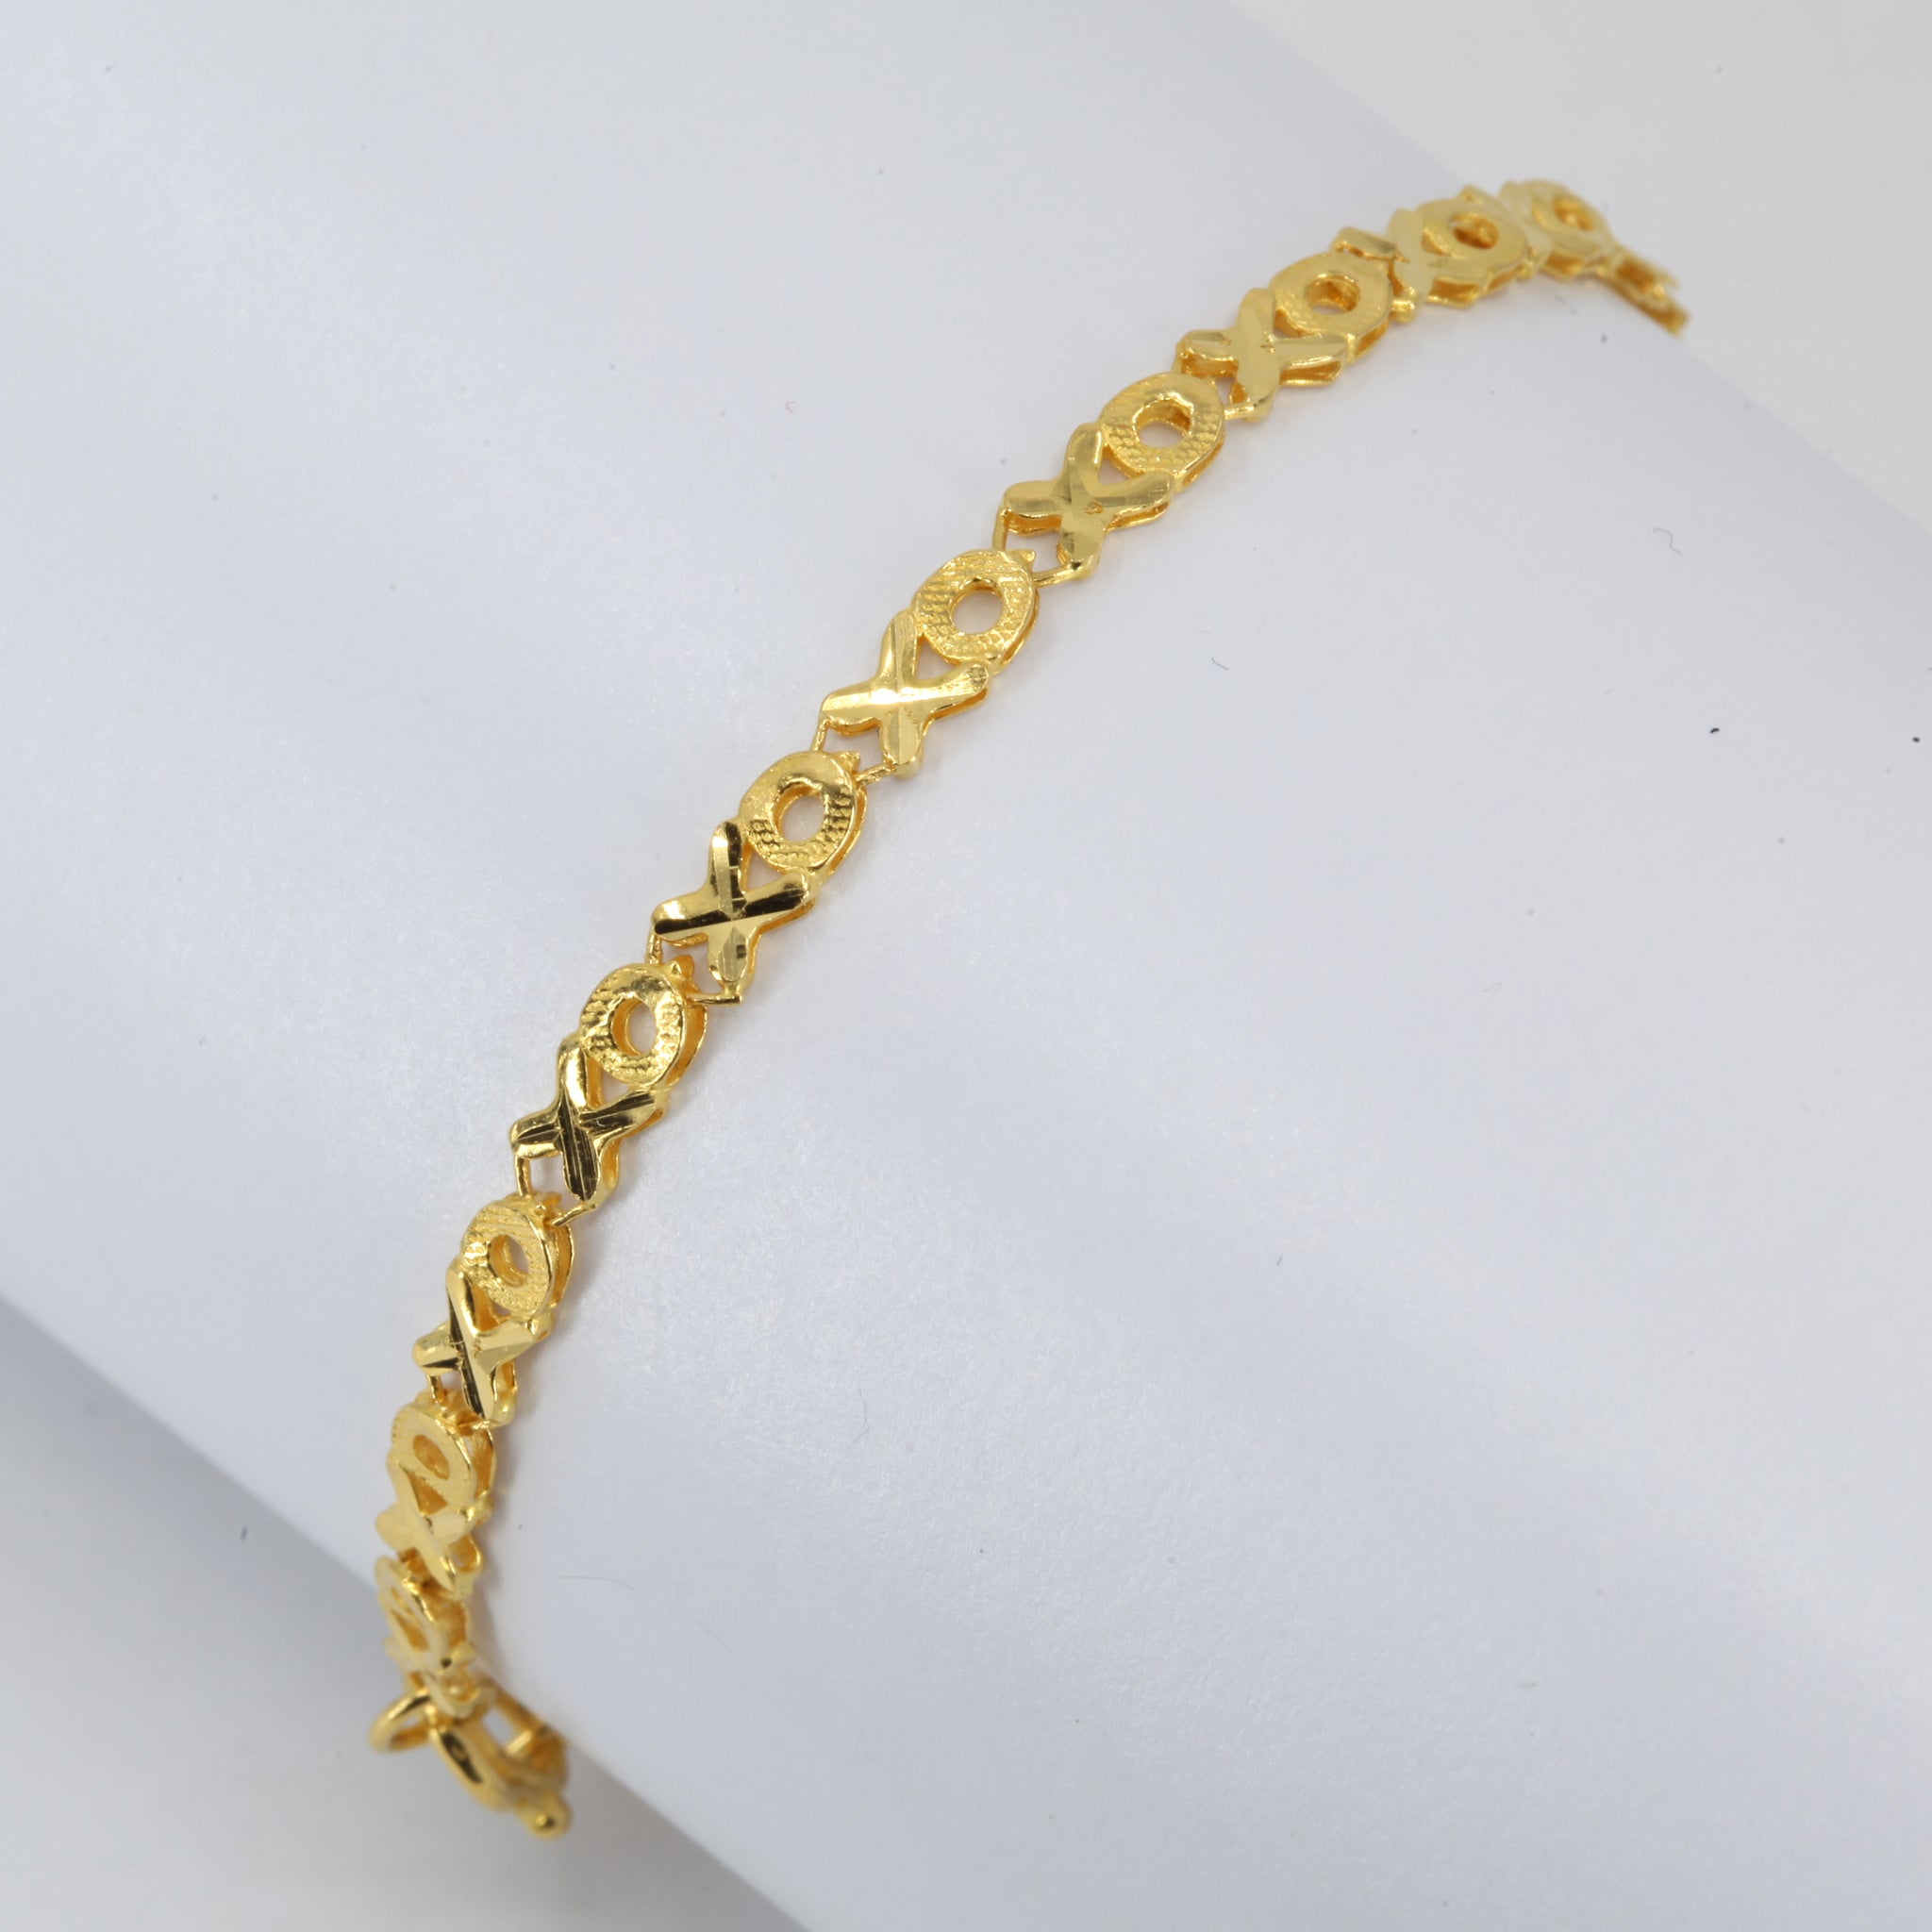 24K Solid Yellow Gold Design Bracelet 4.7 Grams 6.8""